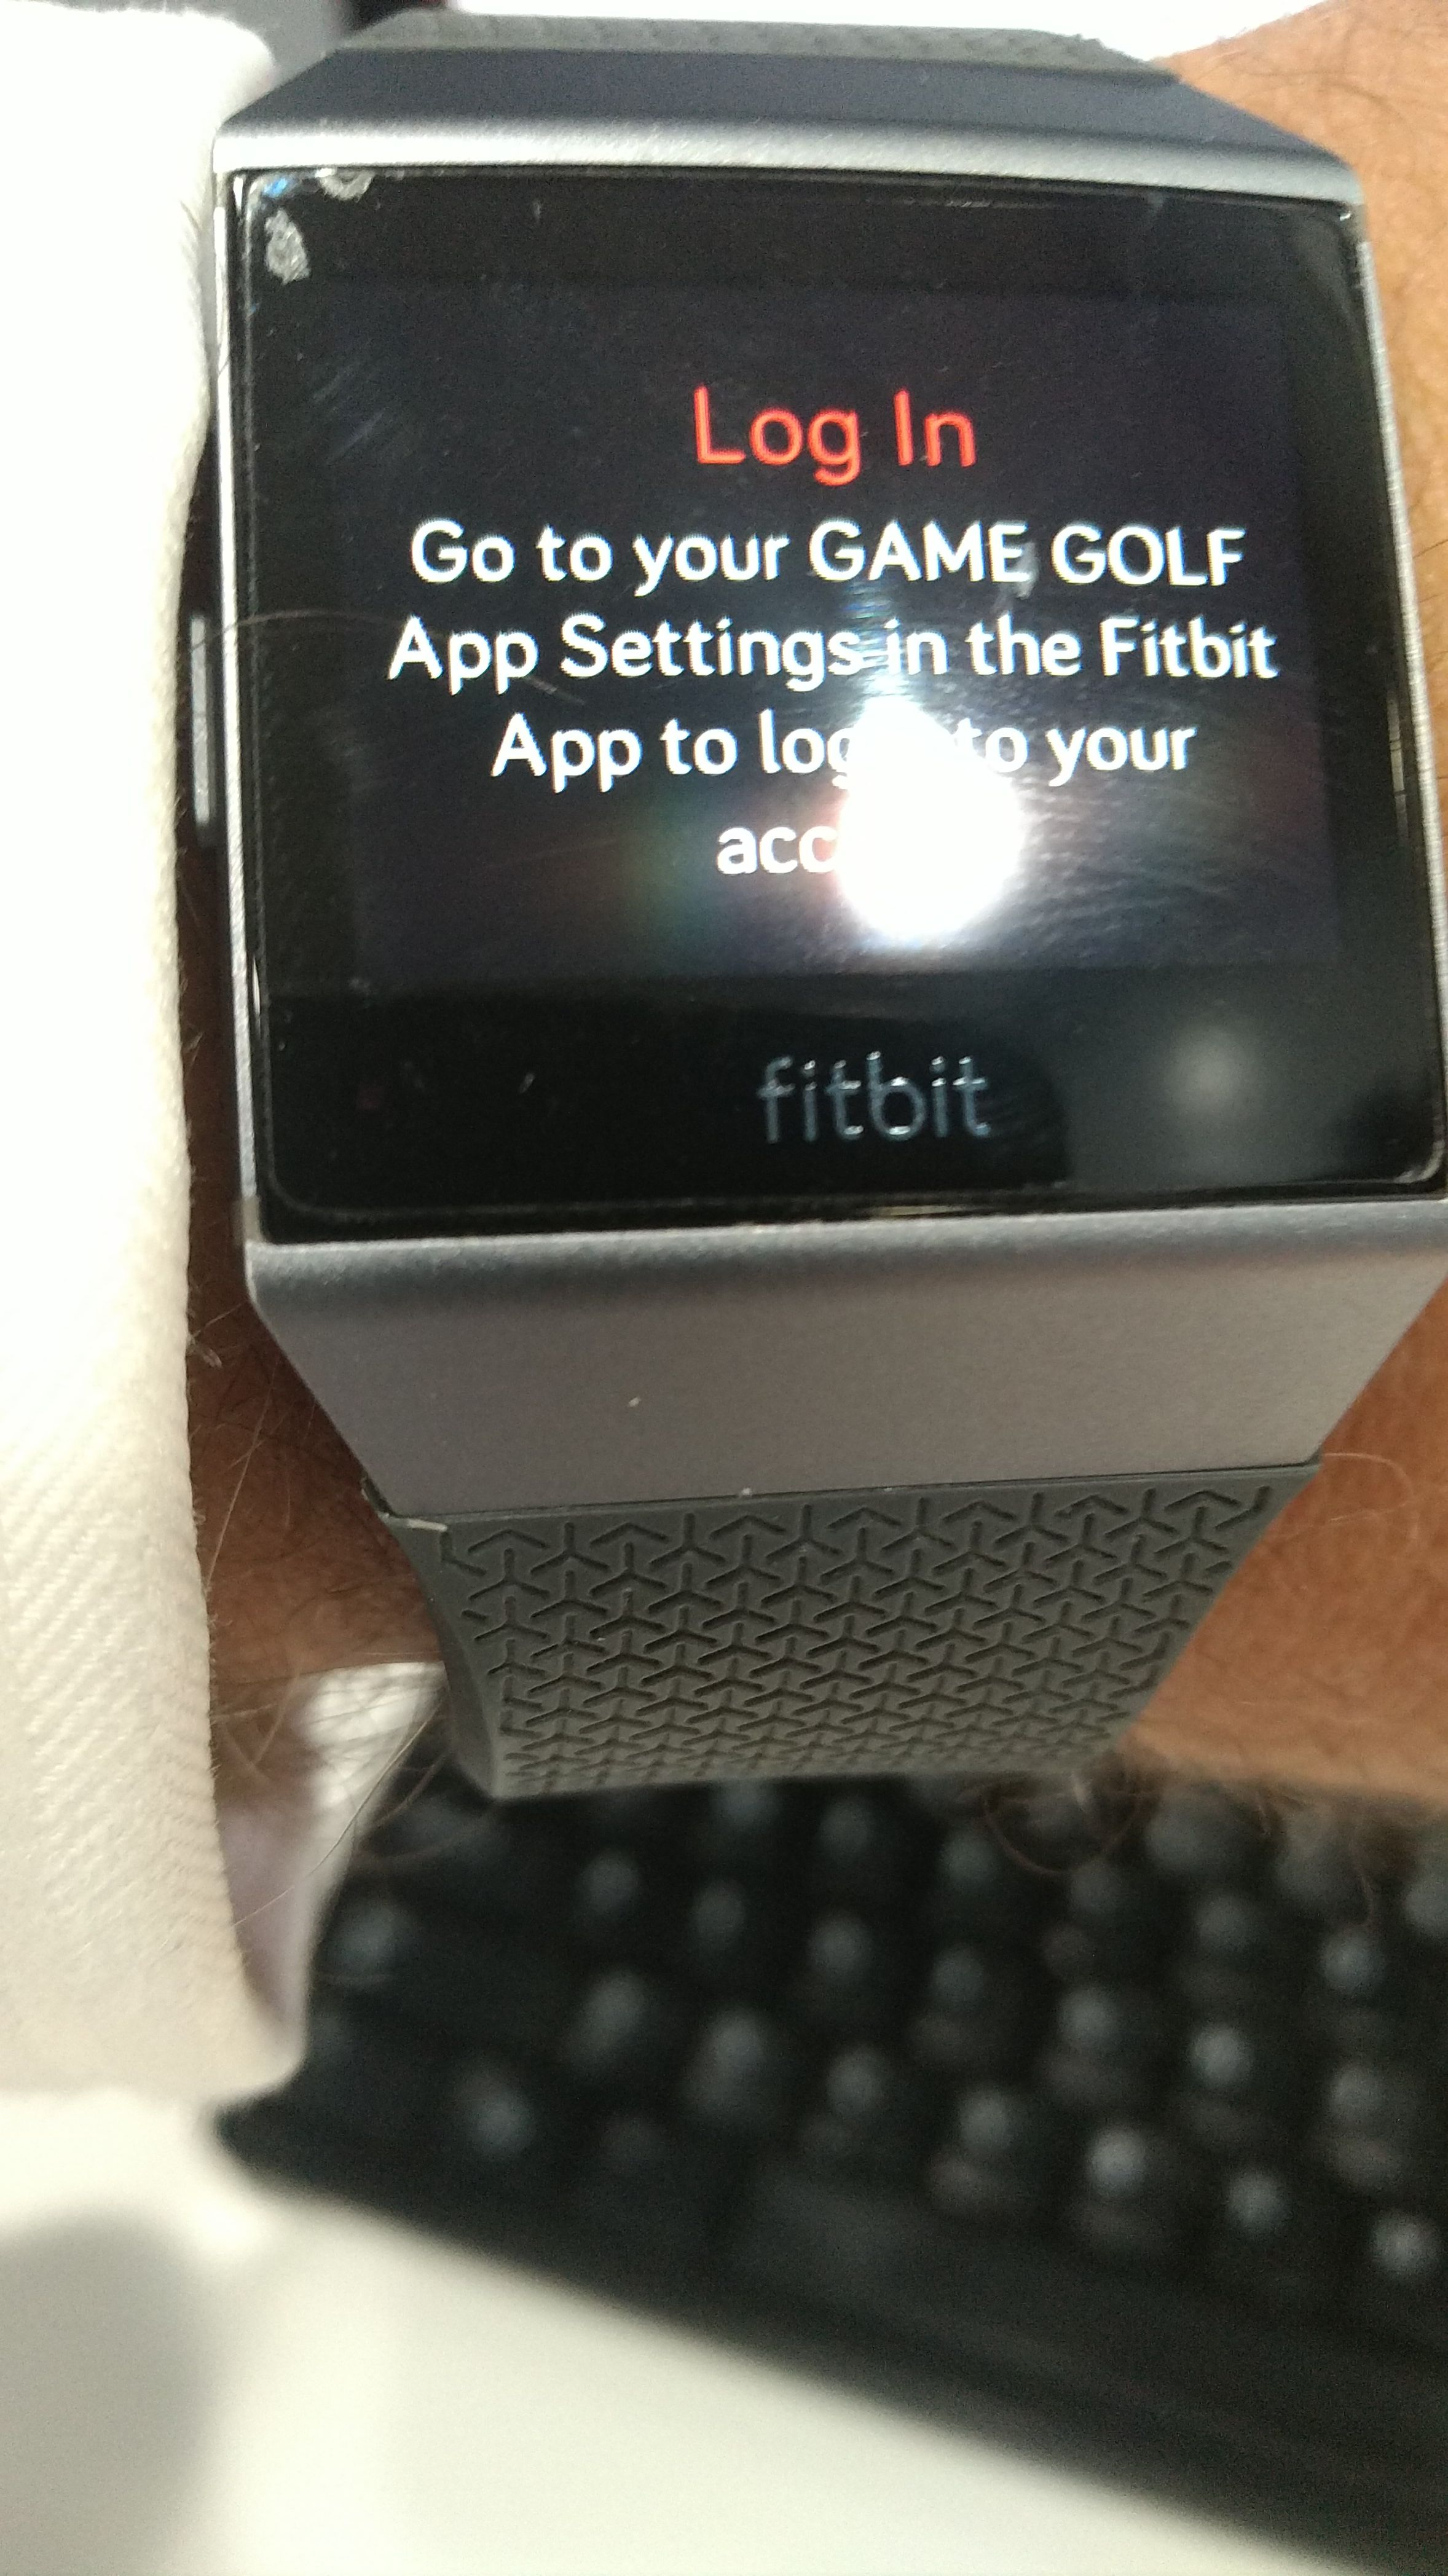 Game Golf cannot login or sync courses - Fitbit Community